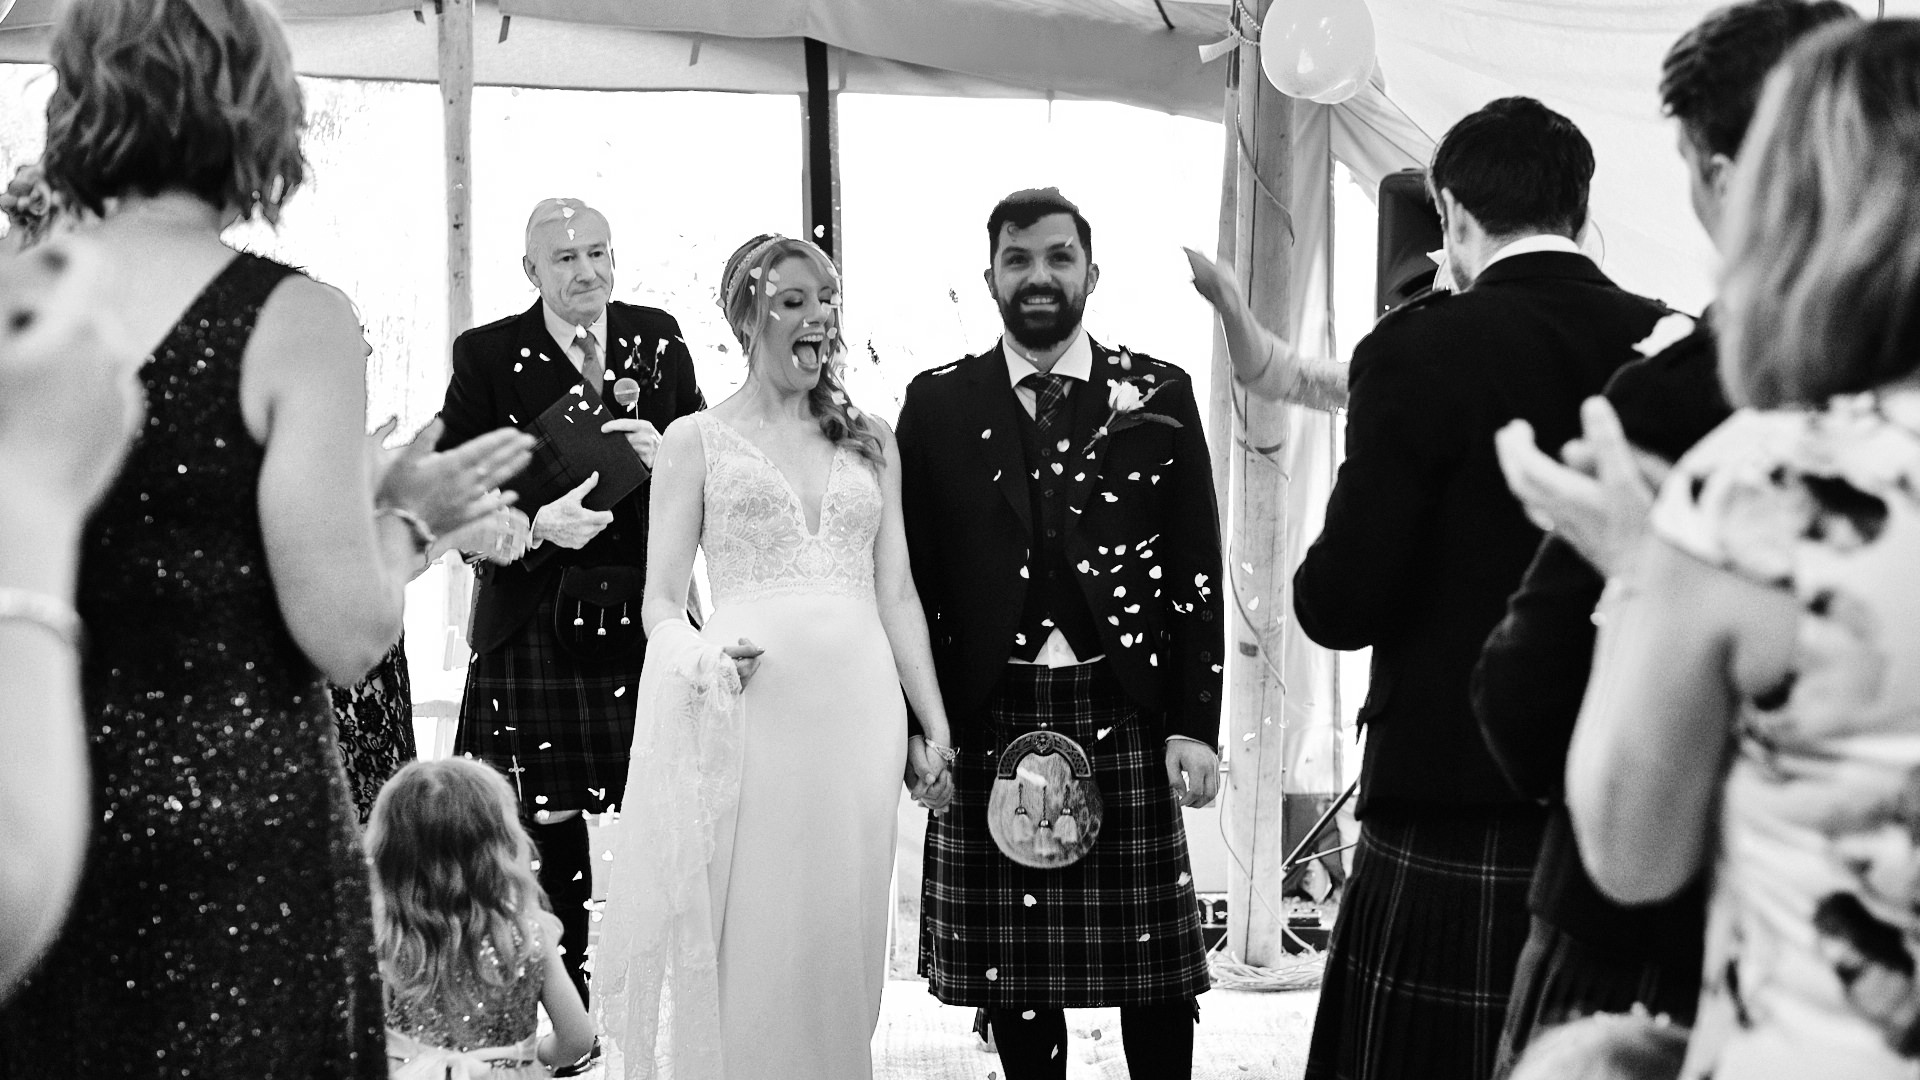 black and white photograph of confetti being thrown over the bride and groom as the walk back down the aisle at their wedding